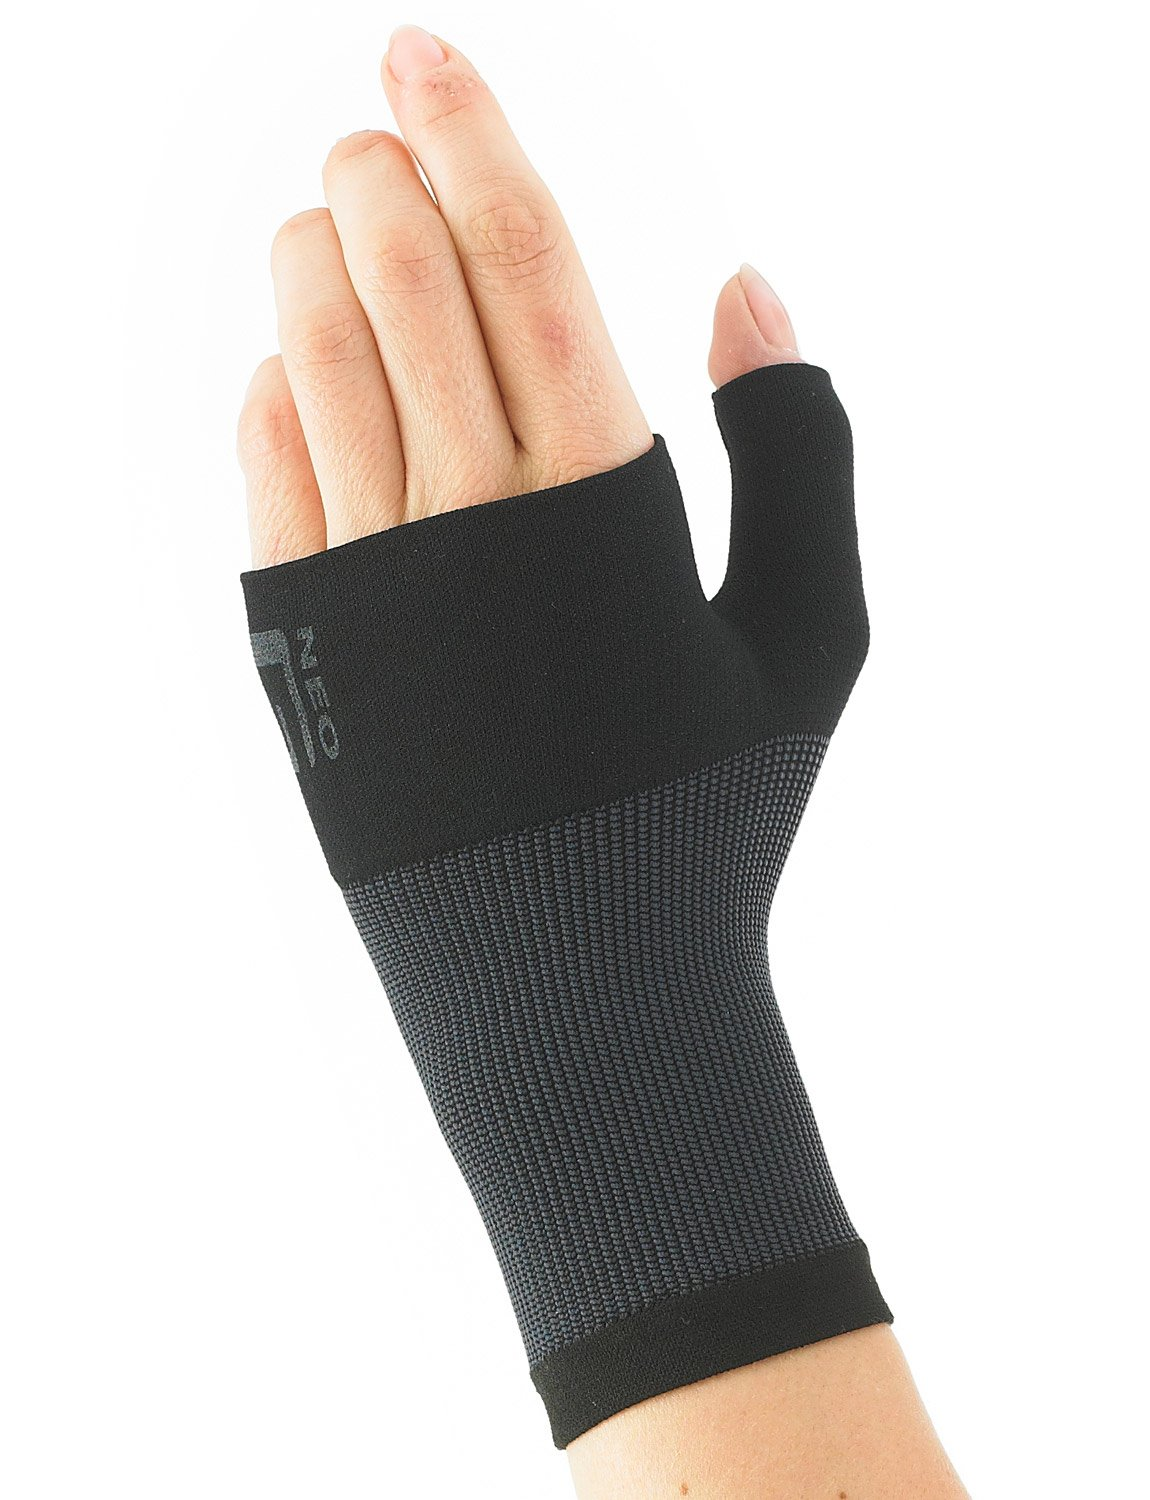 Neo G Wrist and Thumb Support - Ideal For Arthritis, Joint Pain, Tendonitis, Sprains, Hand Instability, Sports - Multi Zone Compression Sleeve - Airflow - Class 1 Medical Device - Medium - Black by Neo-G